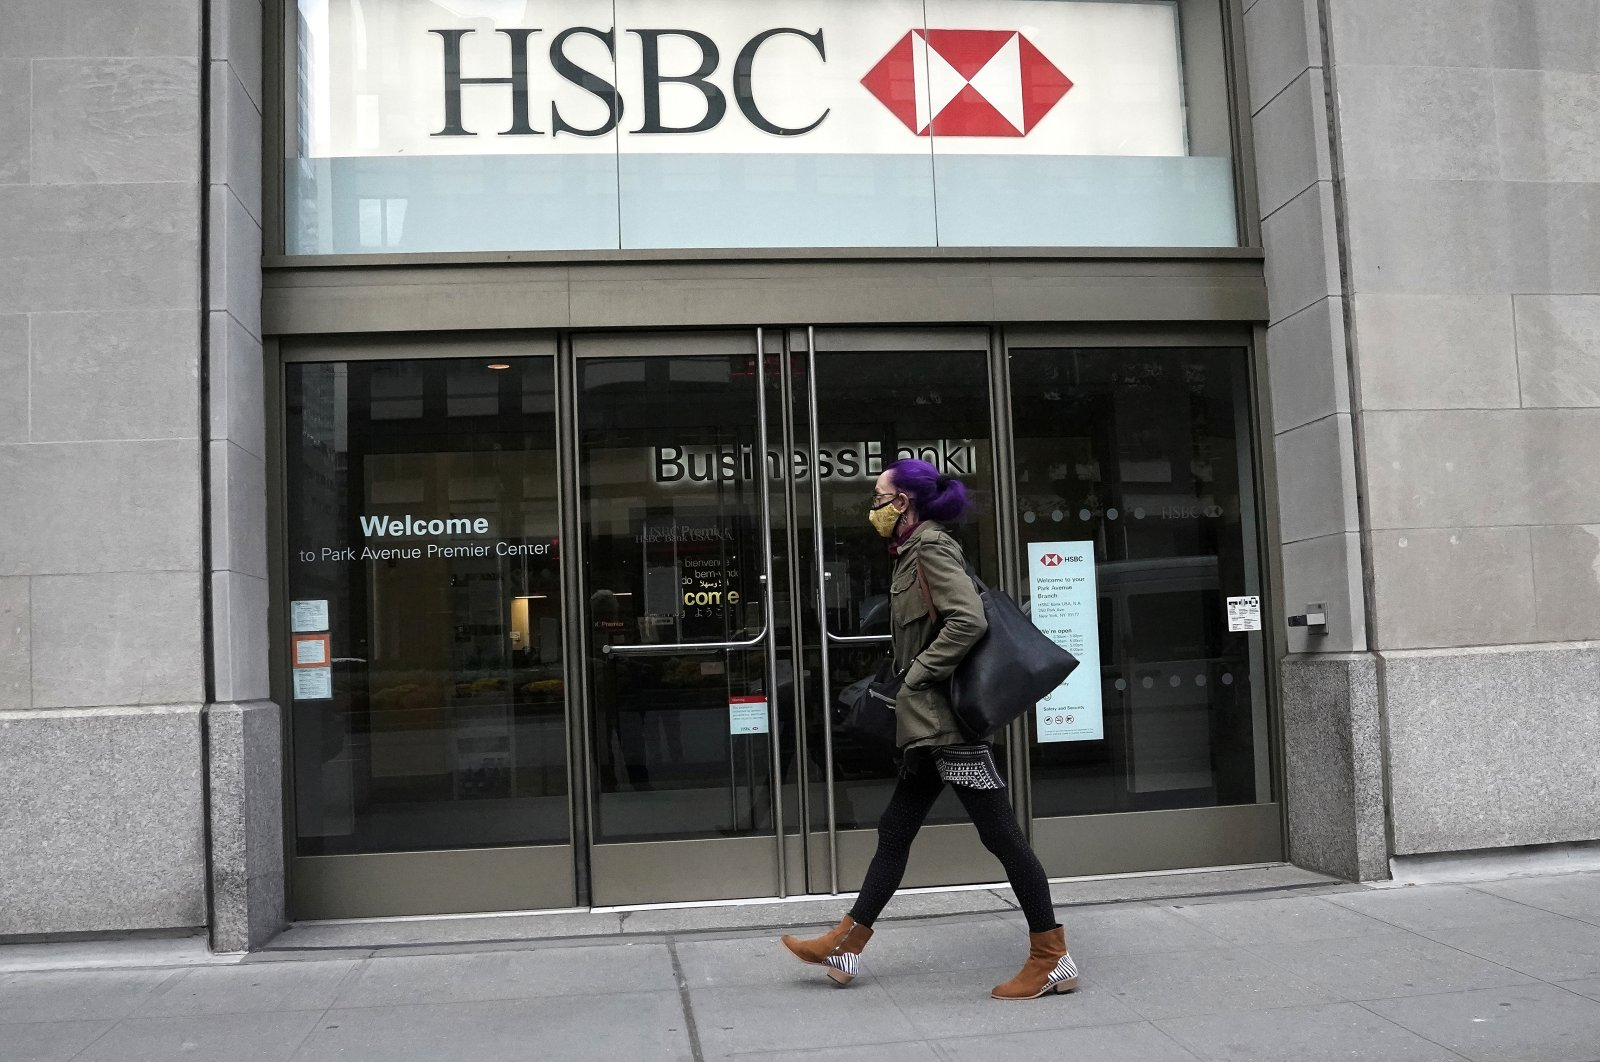 An HSBC bank is pictured during the pandemic in the Manhattan borough of New York City, New York, U.S., Oct. 19, 2020. (Reuters Photo)